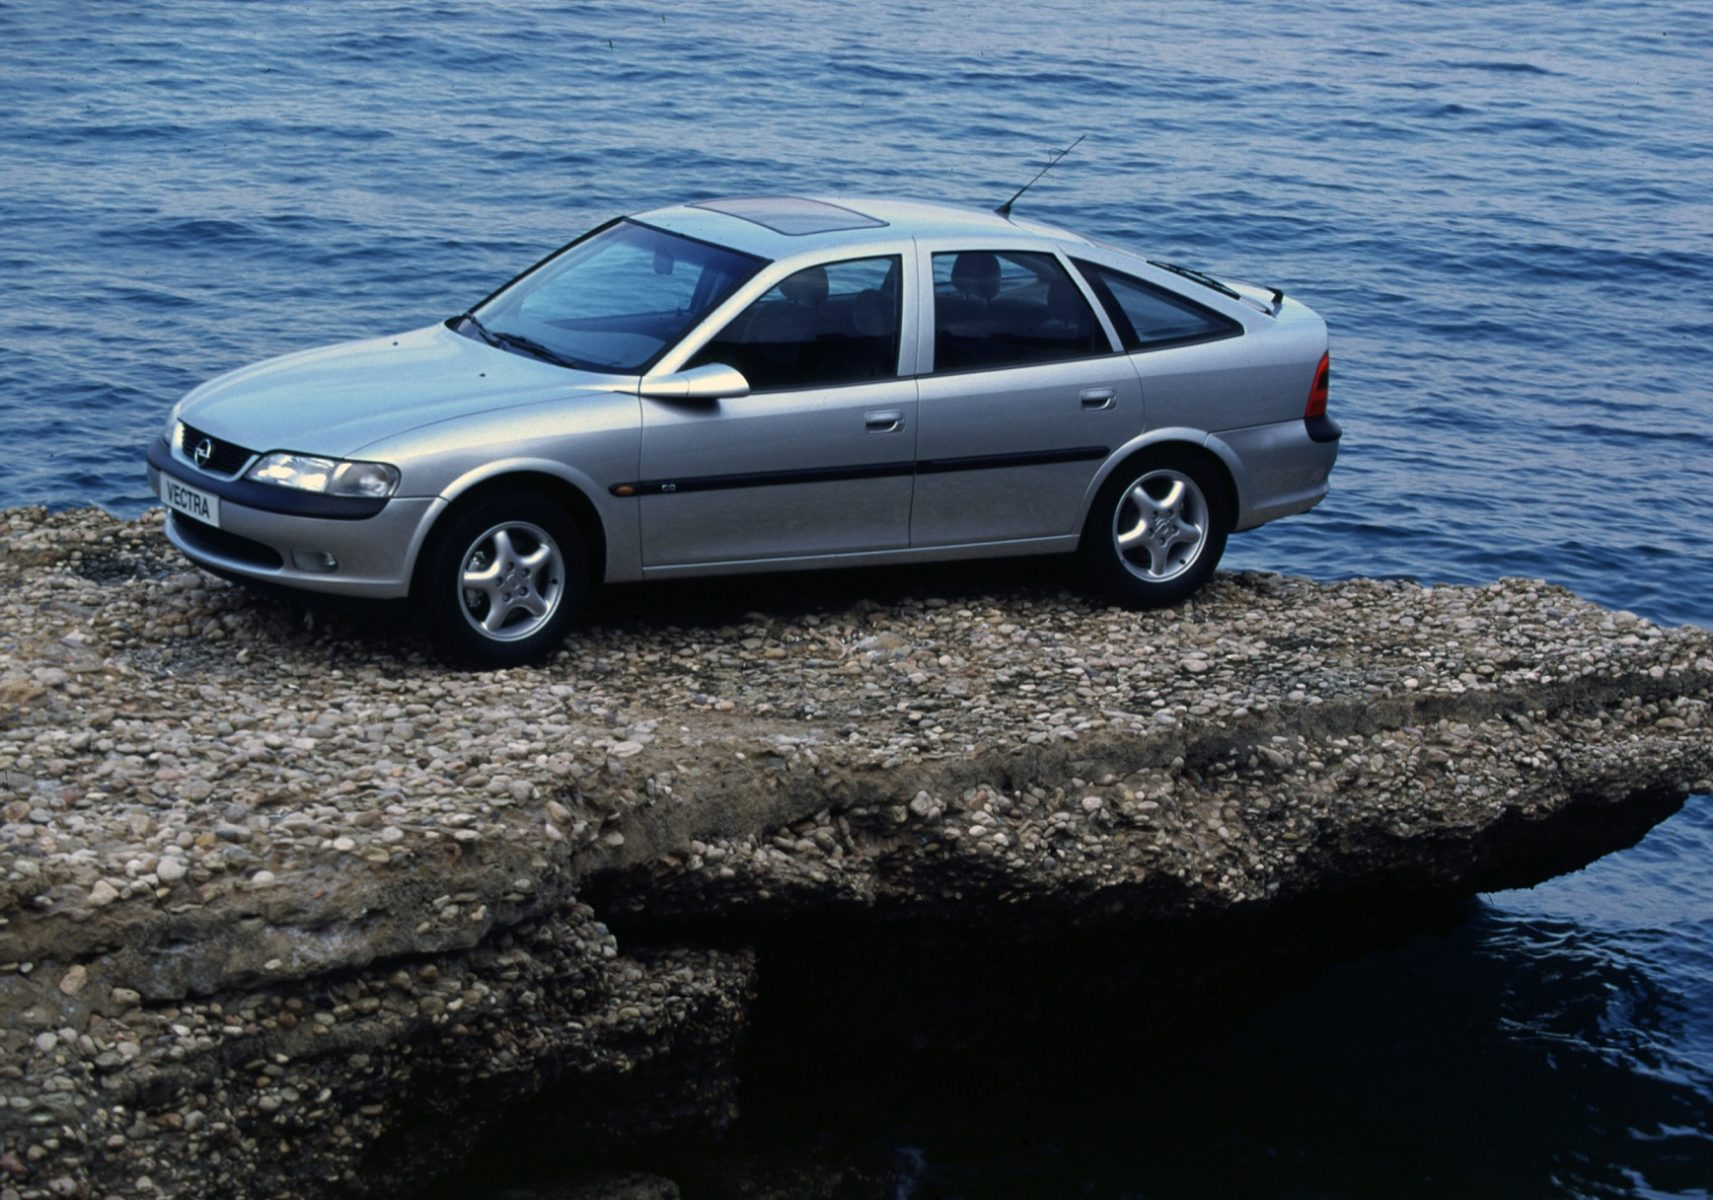 opel vectra hatch prata lateral